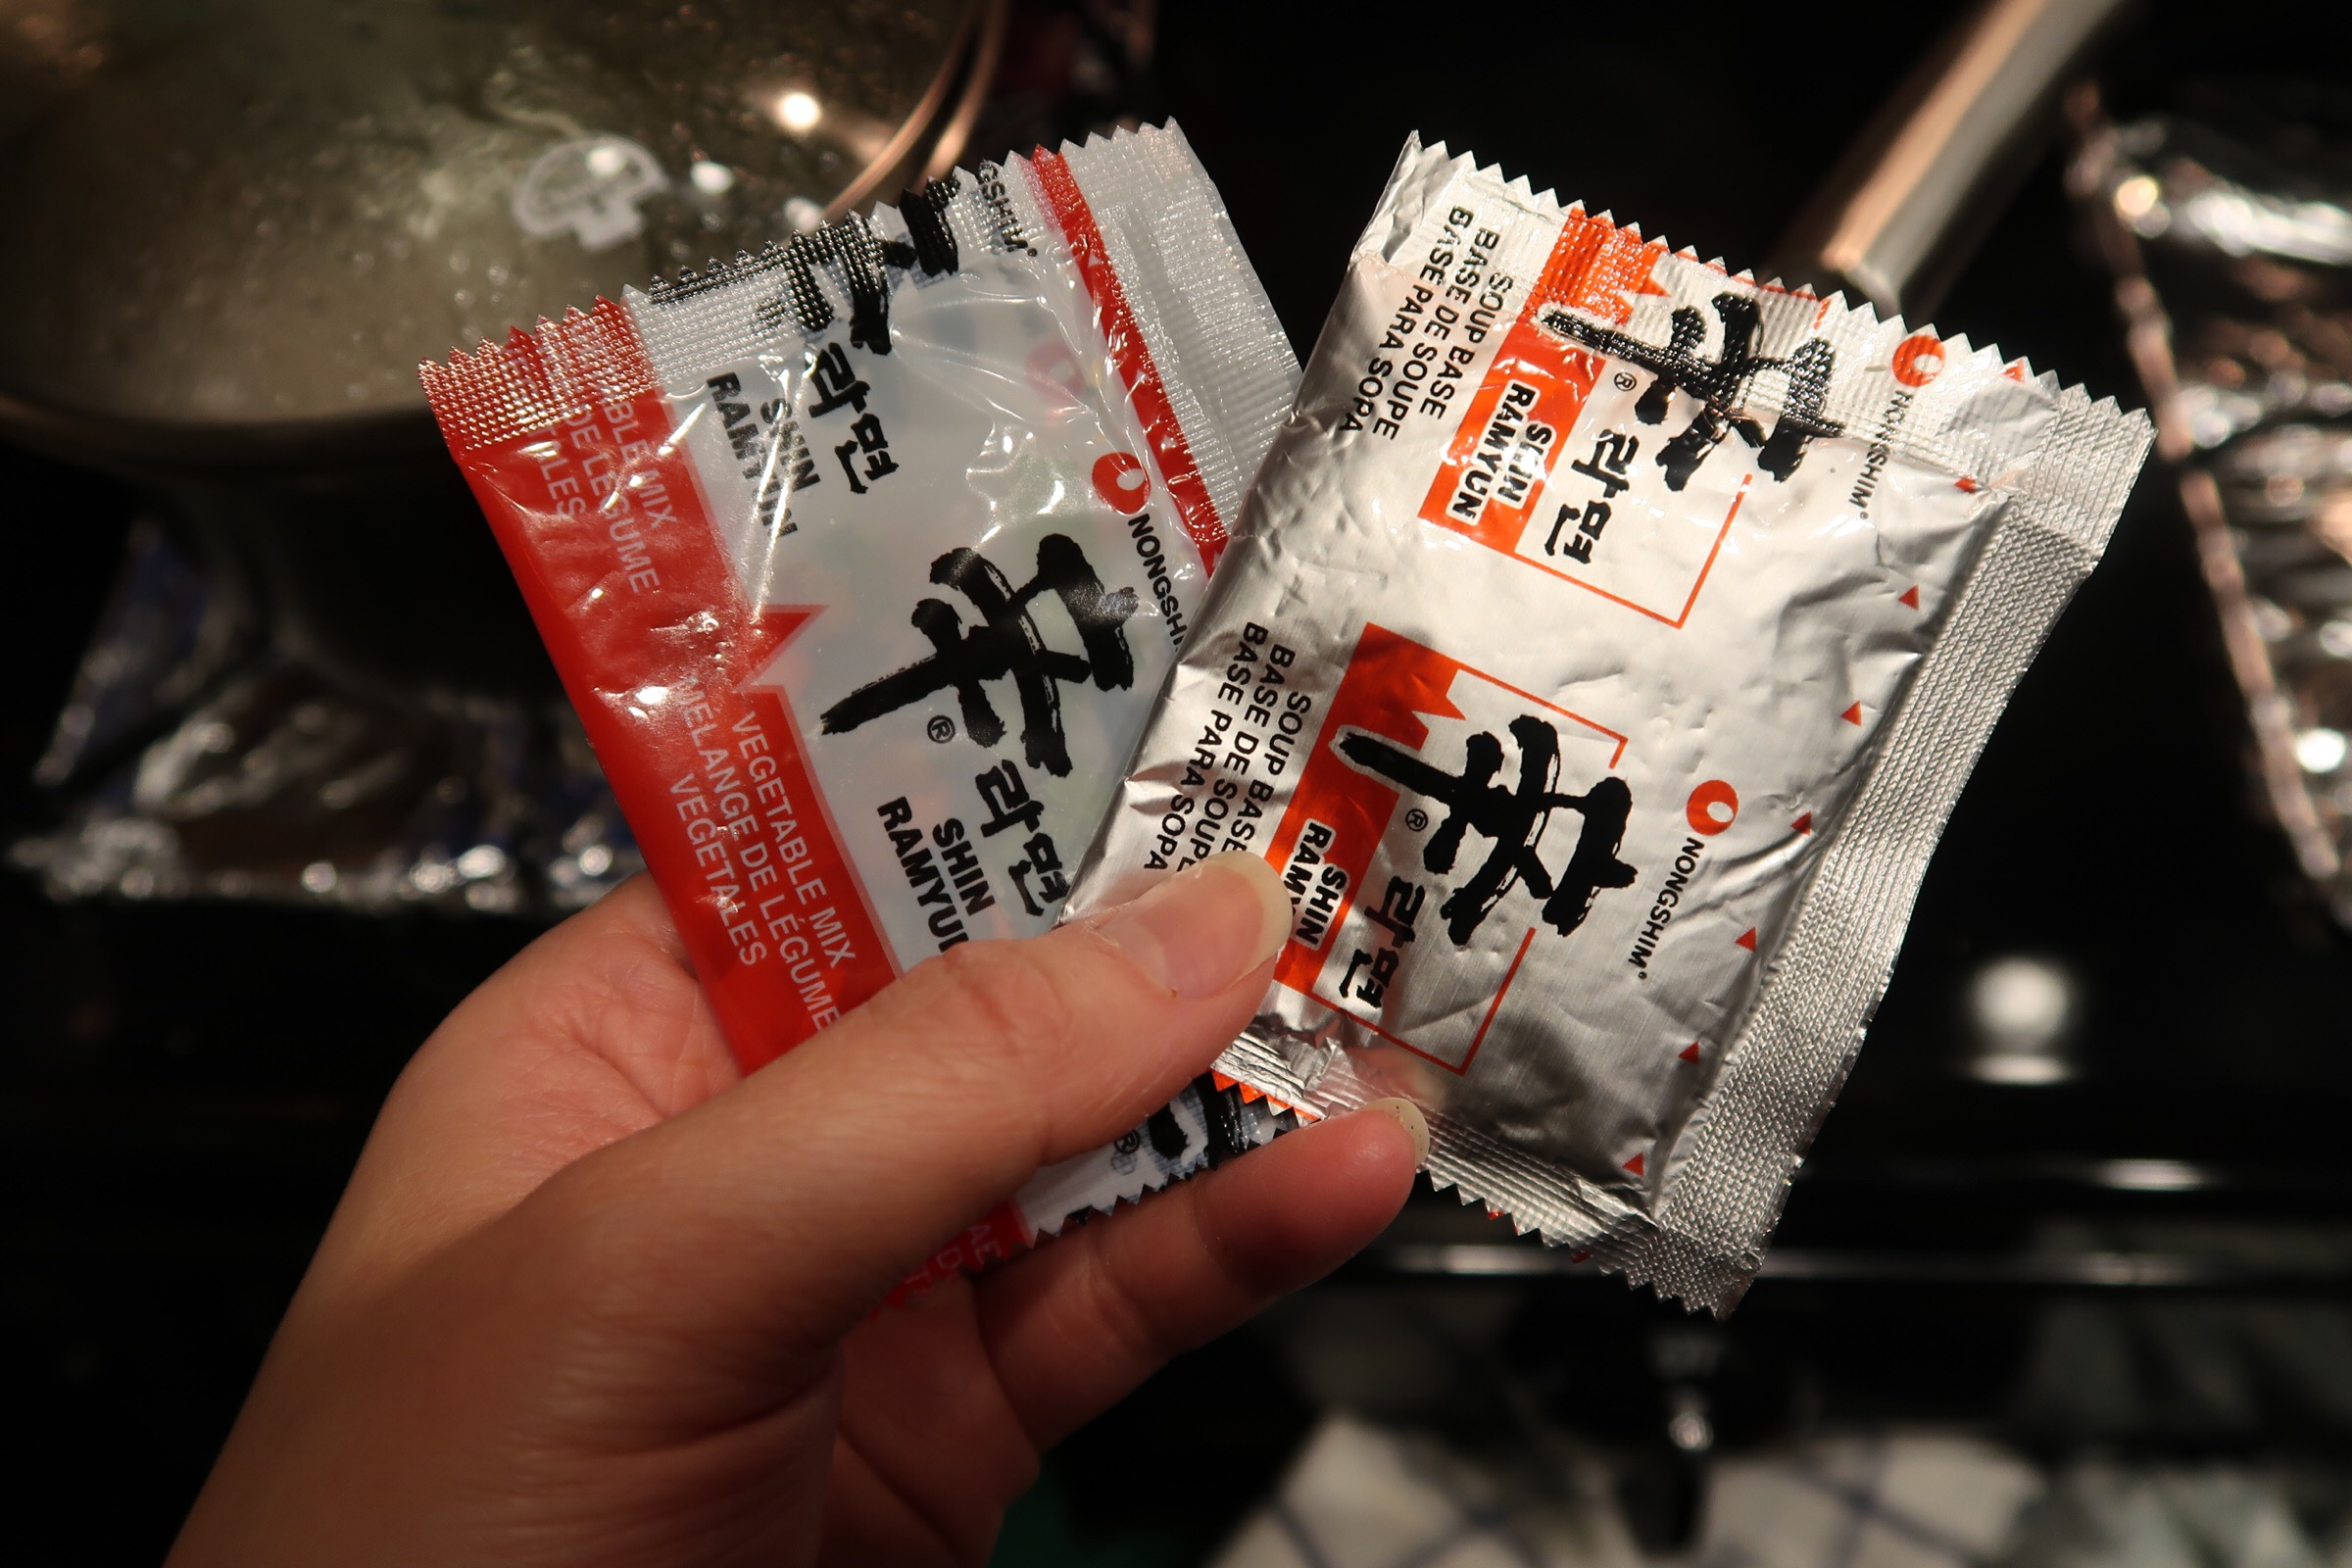 a dried vegetable packet and dry soup packet